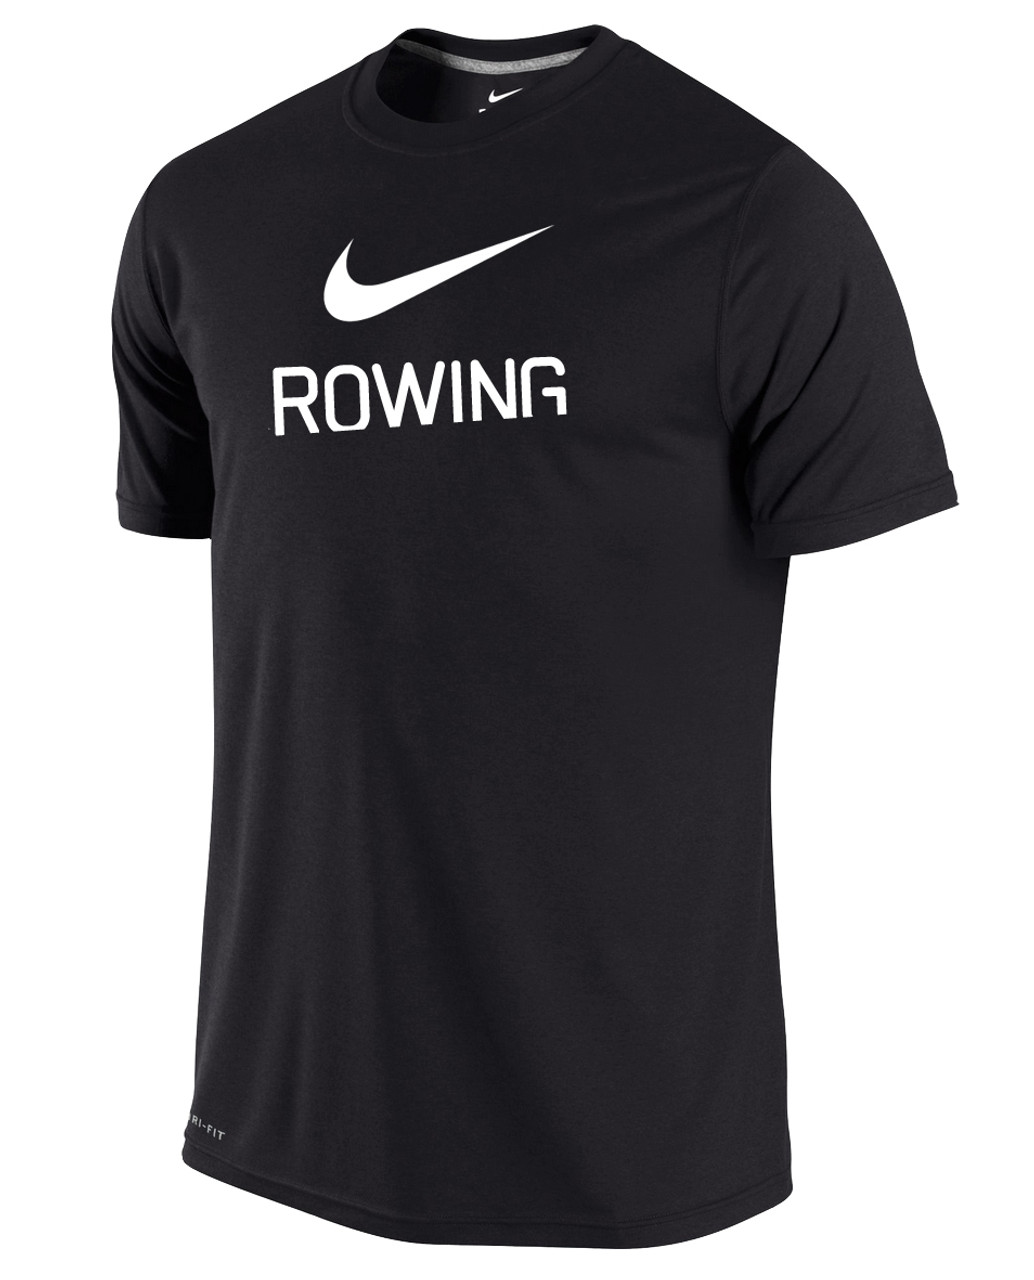 7a133d56f Nike Men's Dri-Fit Rowing Shirt - Black - Athlete Performance Solutions